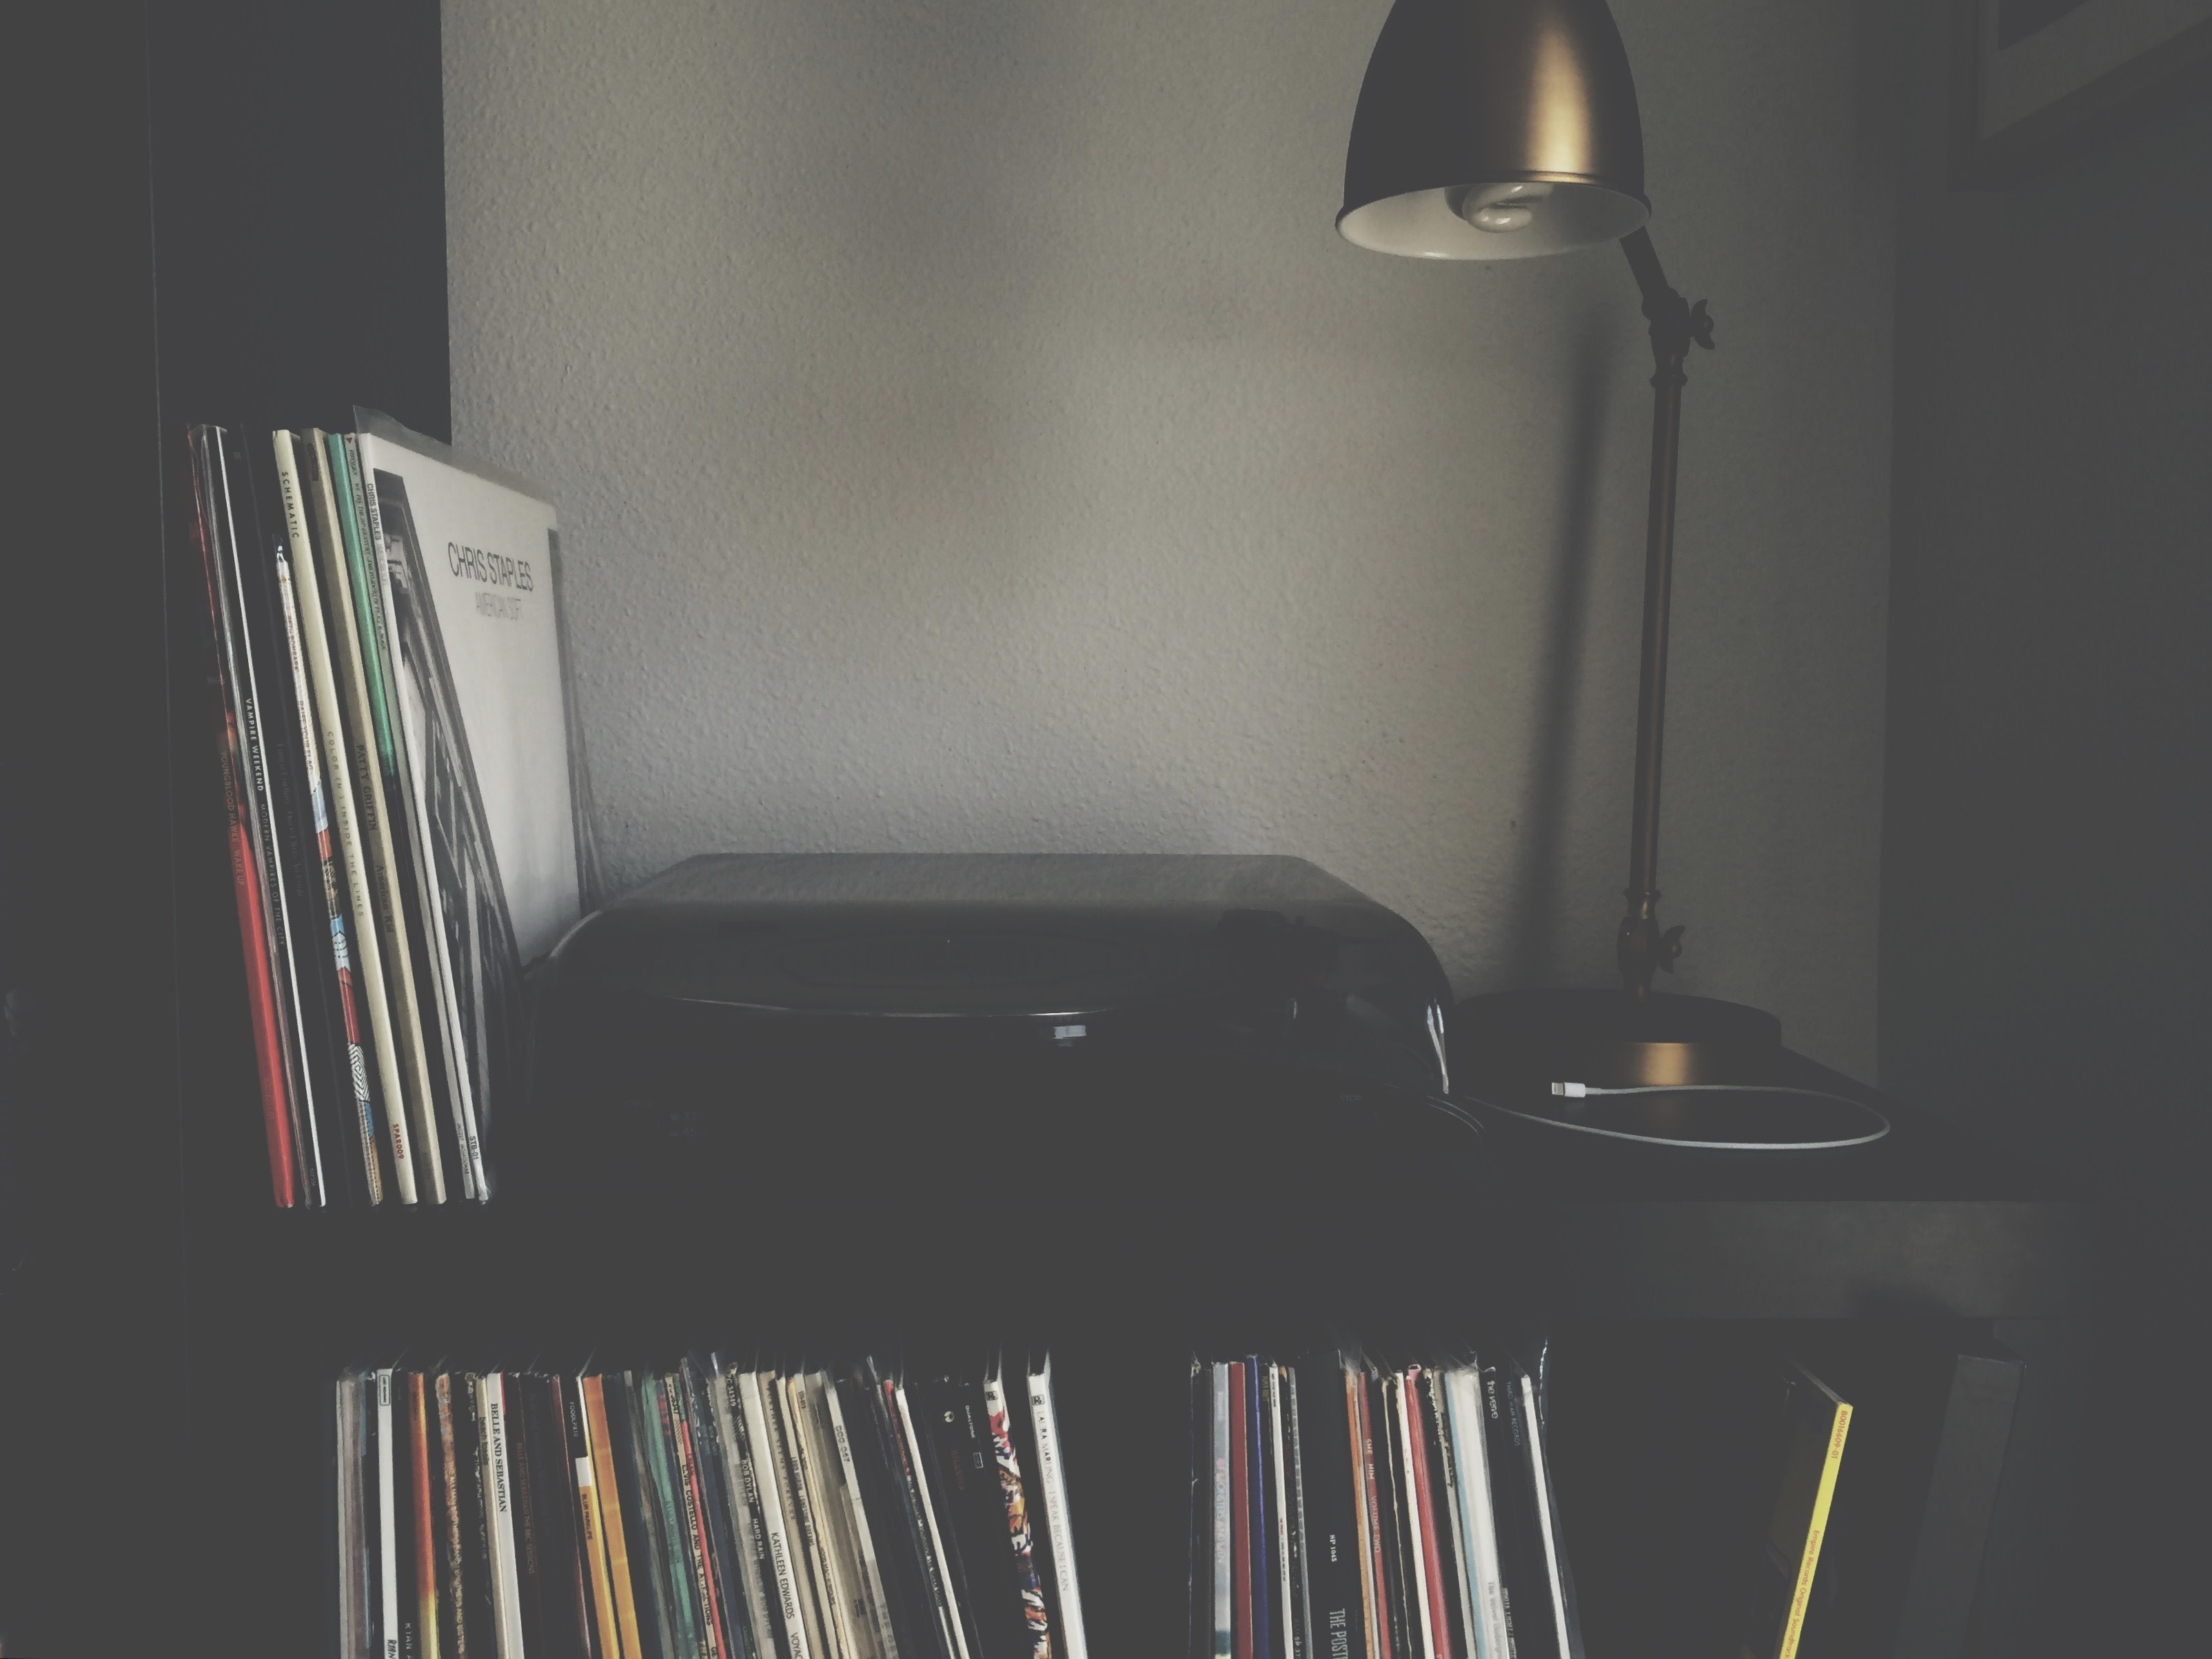 A turntable sitting on shelves filled with records.